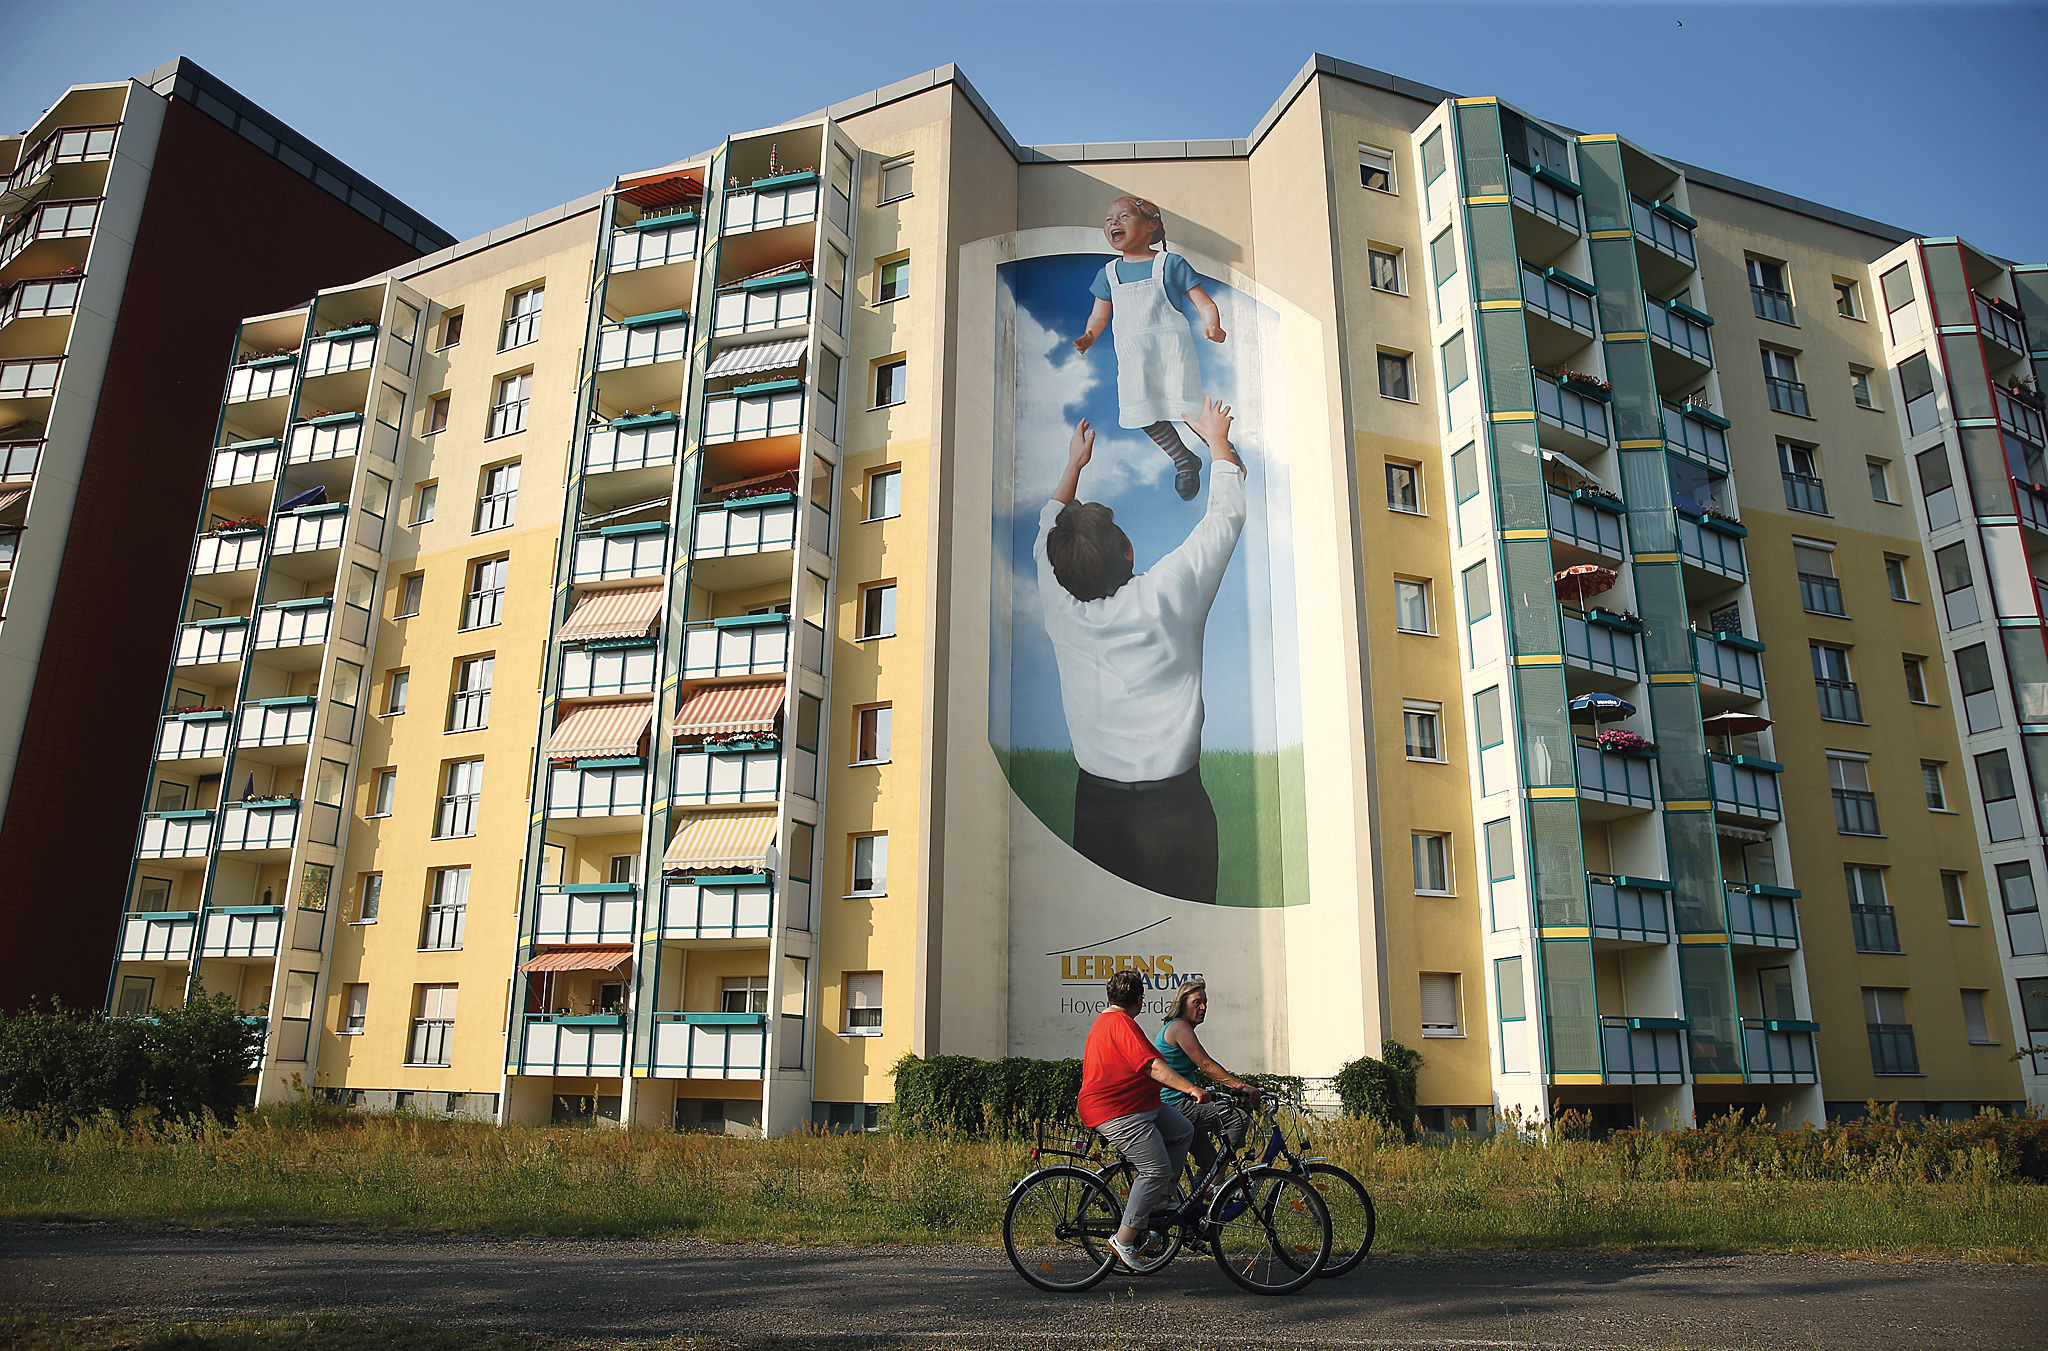 HOYERSWERDA, GERMANY - JULY 07:  A mural on the side of communist-era apartment blocks shows a father tossing his daughter into the air on July 7, 2015 in Hoyerswerda, Germany. Hoyerswerda was largely built by the communist East German authorities in the 1950s in order to house workers needed for nearby coal mines, power plants and factories, and by 1981 had a population of over 70,000. After the collapse of the communist government in 1989 the factories shut down and coal production declined, resulting in a population that has sunk to around 34,000 today, making Hoyerswerda the city with the starkest population decline in Germany. 25 years since German reunification eastern Germany is struggling with a low birth rate, rural emigration and unemployment rates higher than in western Germany.  (Photo by Sean Gallup/Getty Images)